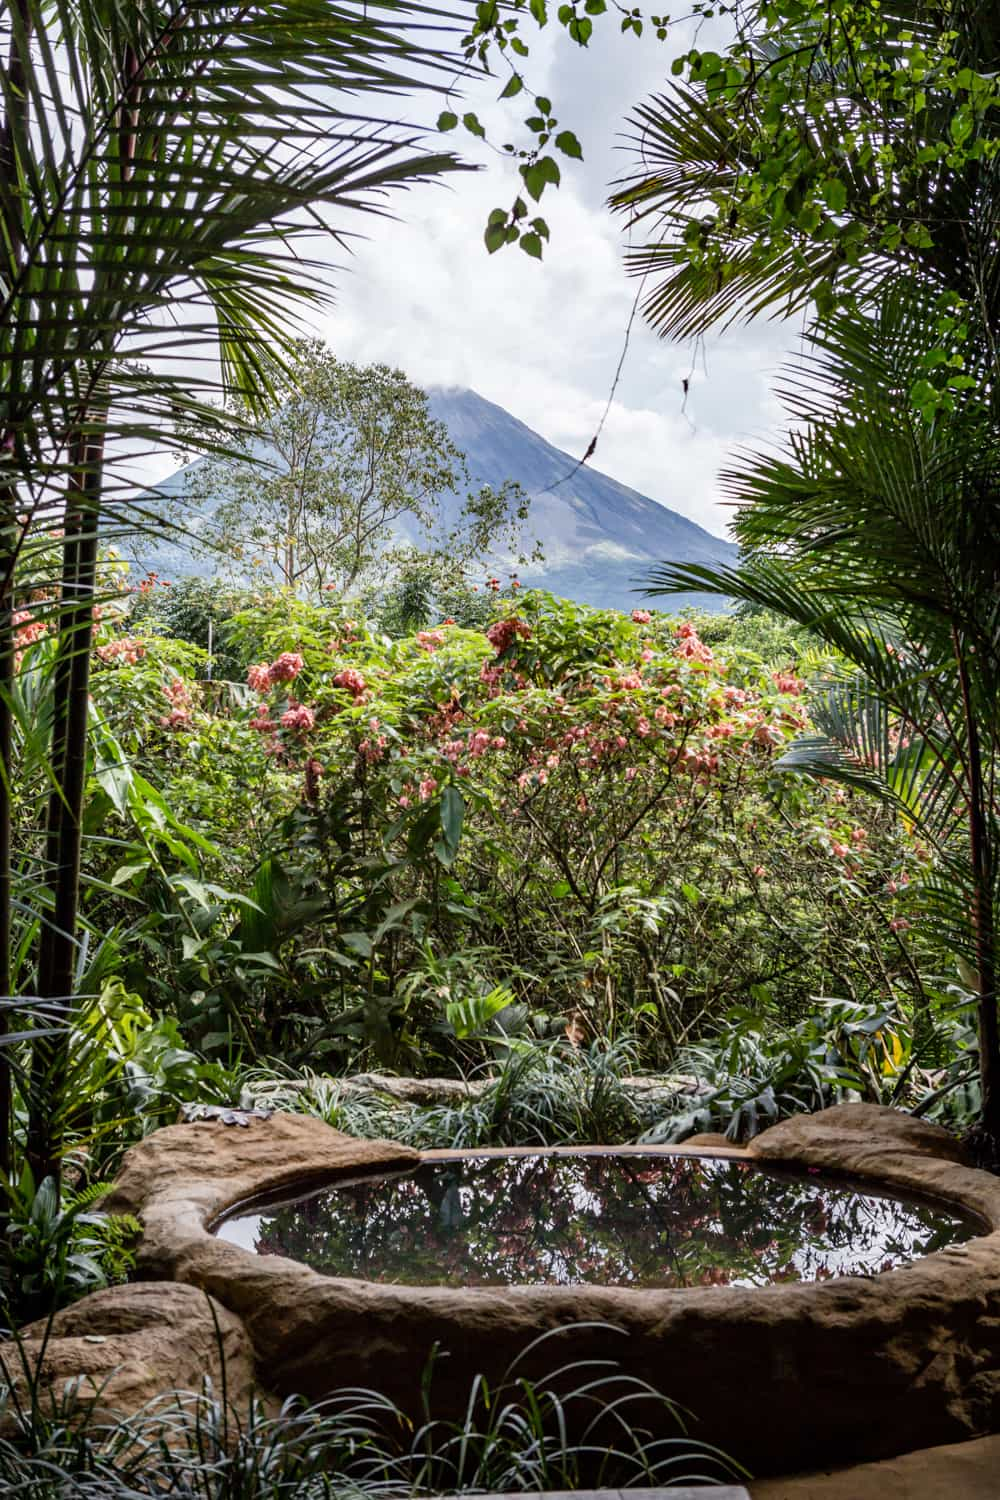 Newlywed suite stone hot tub with view of Arenal Volcano.